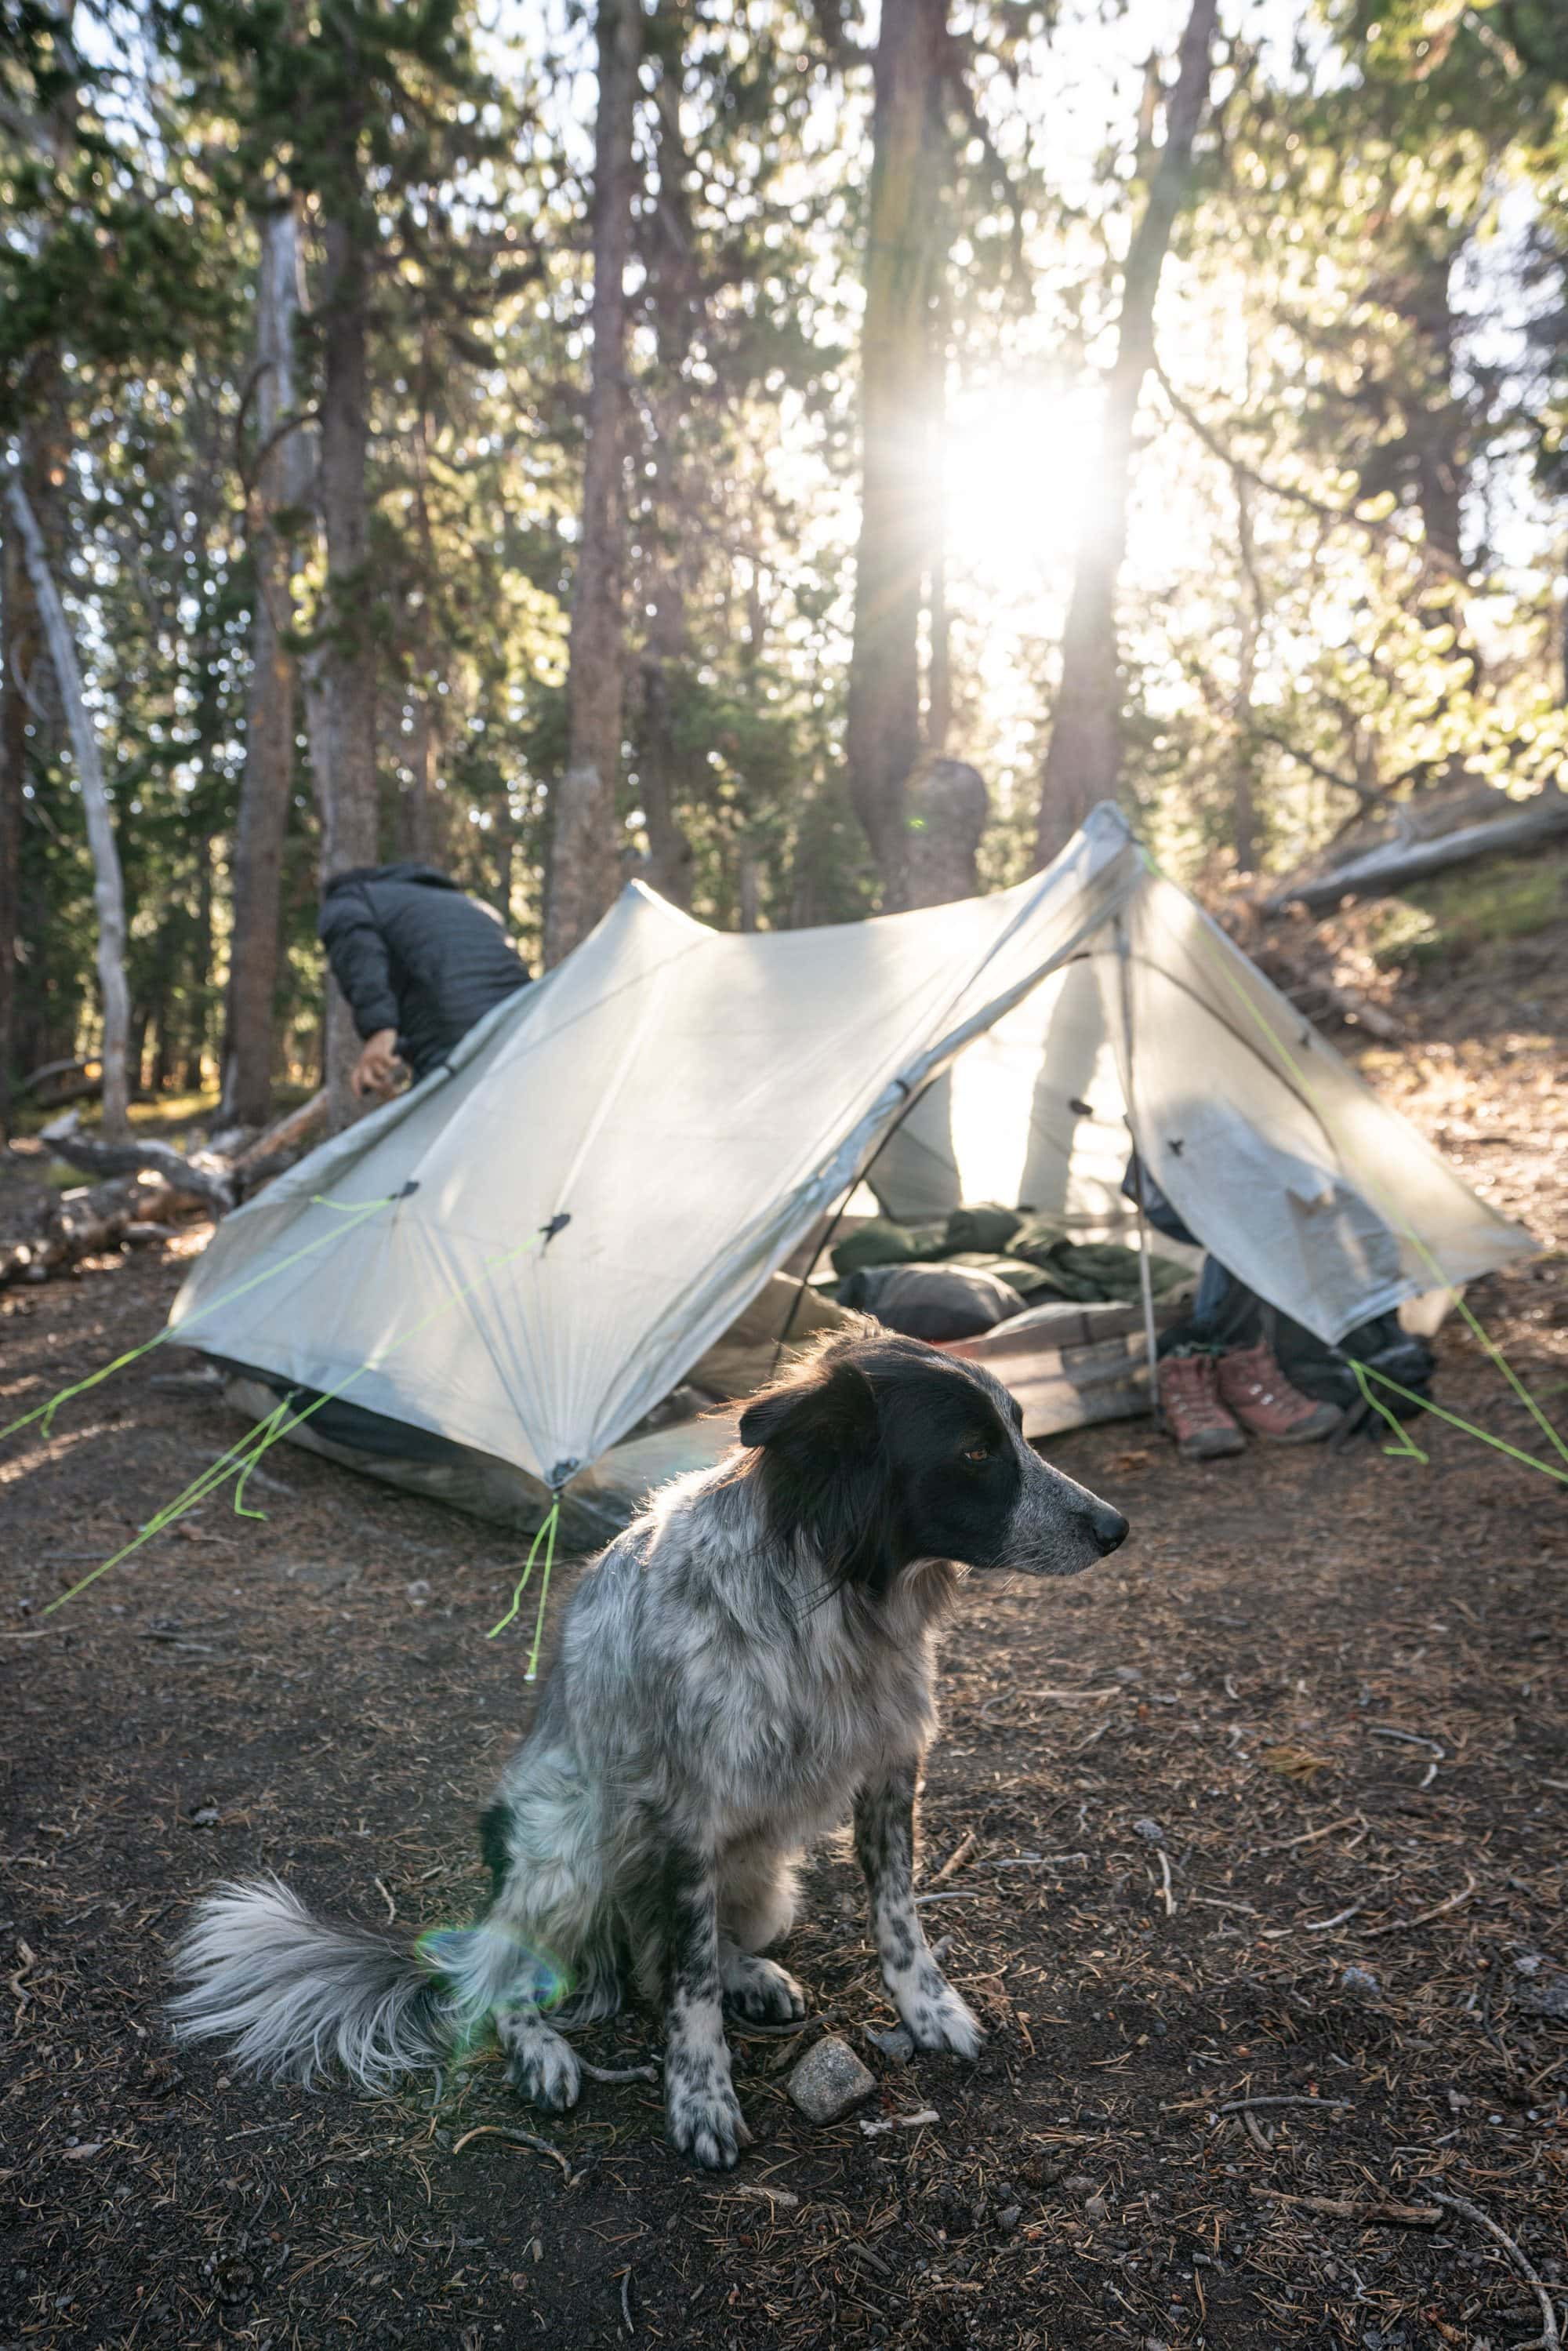 Extend the life of your tent by taking care of it during & after overnight camping trips. Read the best tips for tent care, cleaning & how to do repairs.